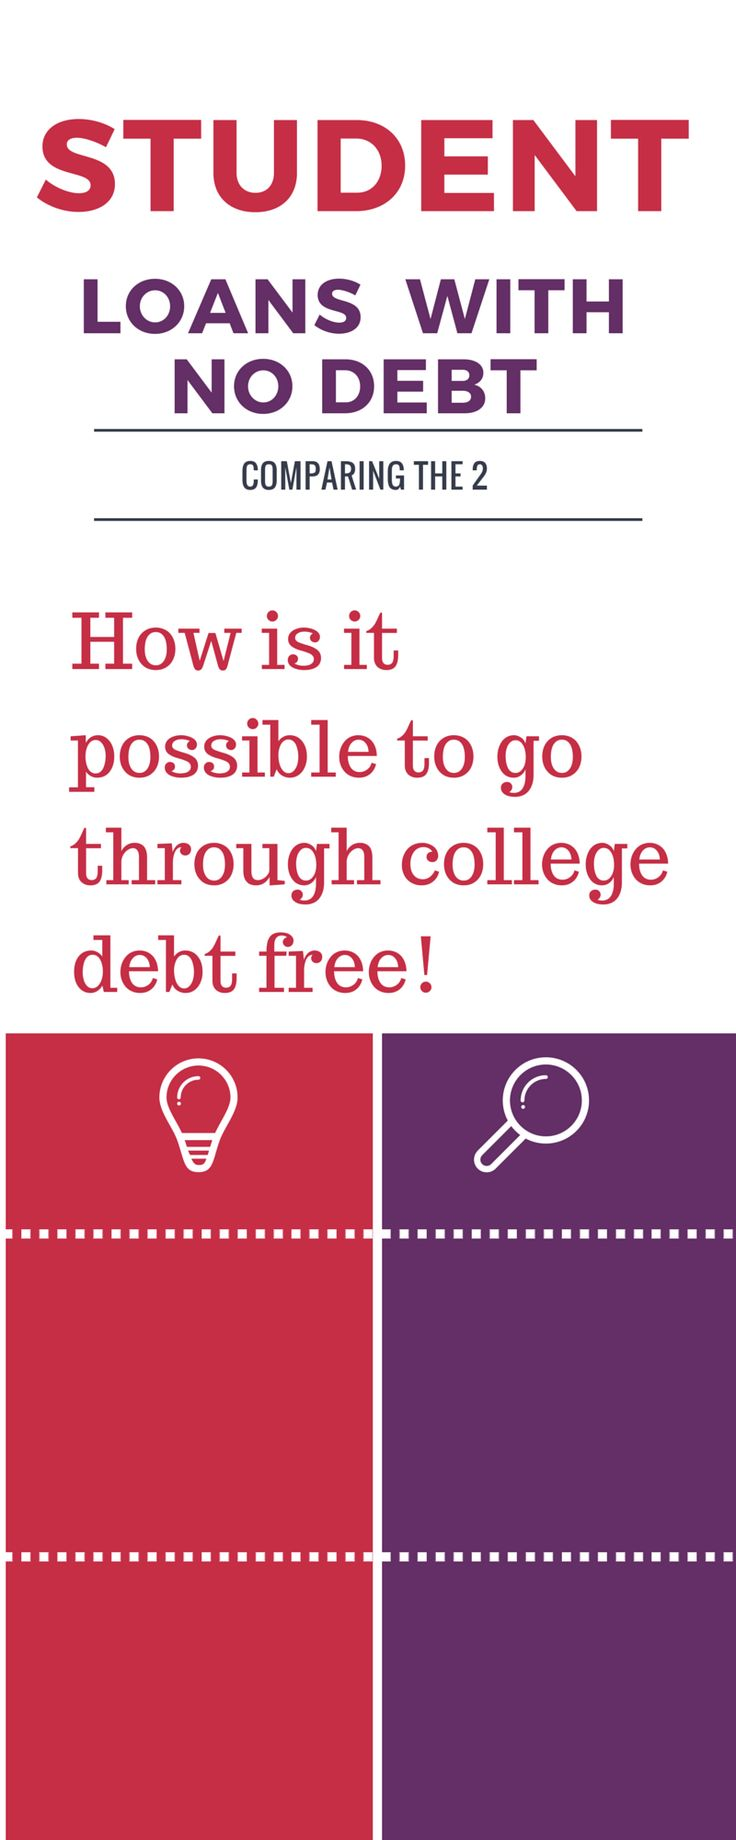 The most popular types of student loans with no credit check are federal student loans, namely Stafford and Perkins loans. As these are federal student loans http://bankreferralcoupon.com/2015/04/03/student-loans-with-no-credit/